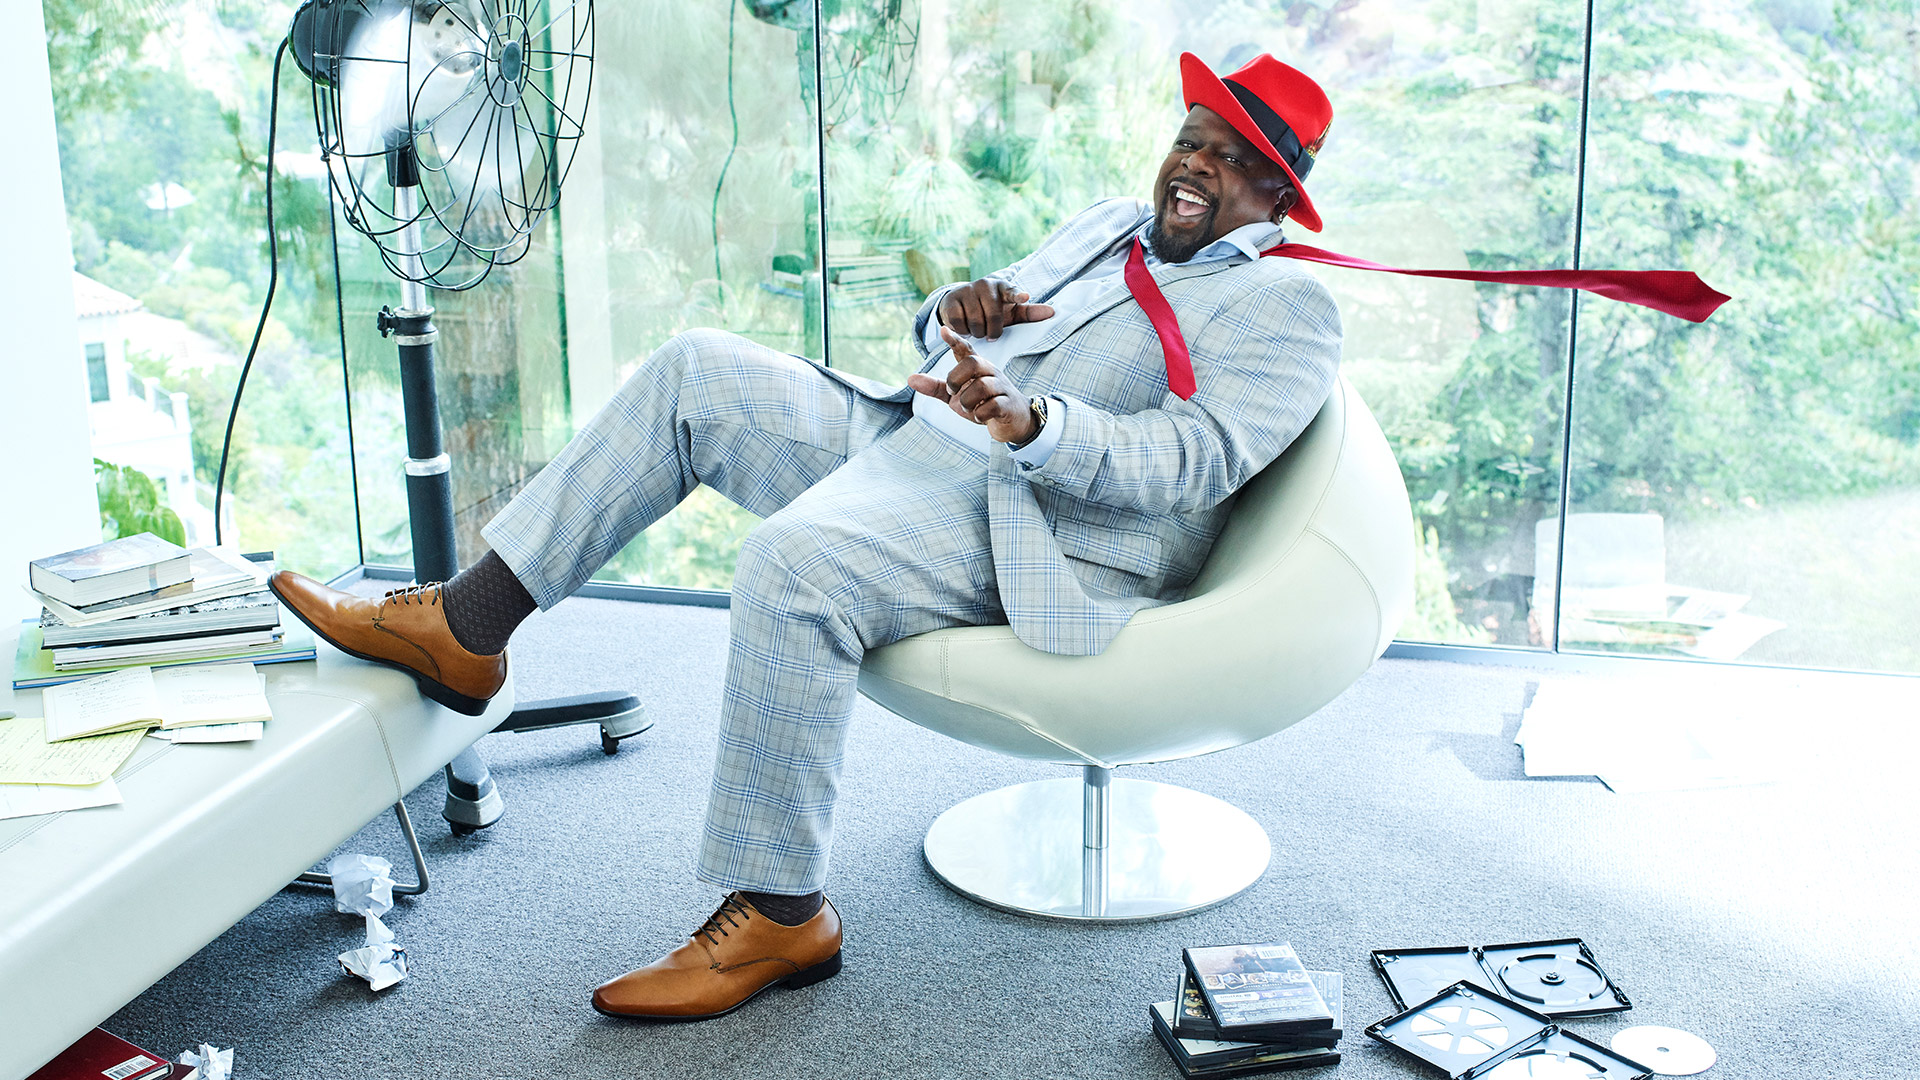 Cedric the Entertainer is blown away